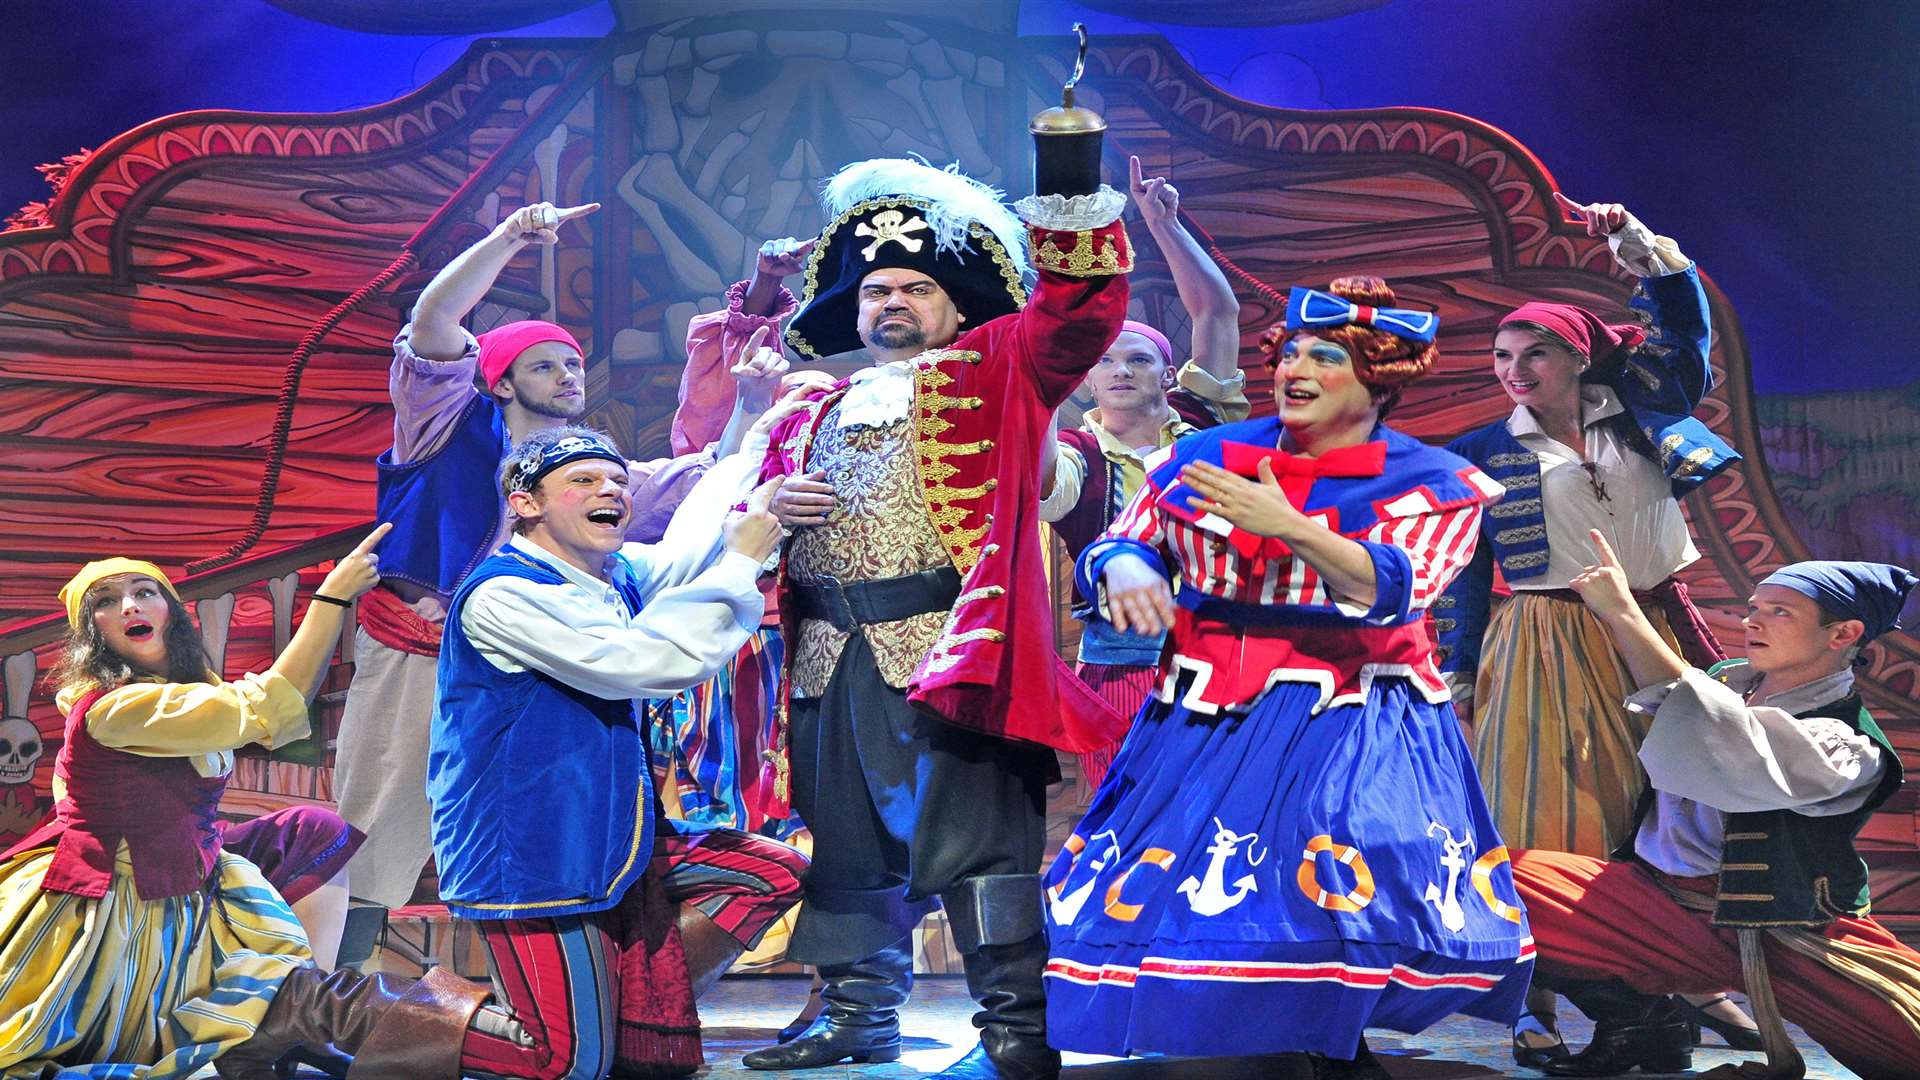 Former EastEnder Shaun Williamson as Captain Hook in the Marlowe Theatre's panto, Peter Pan